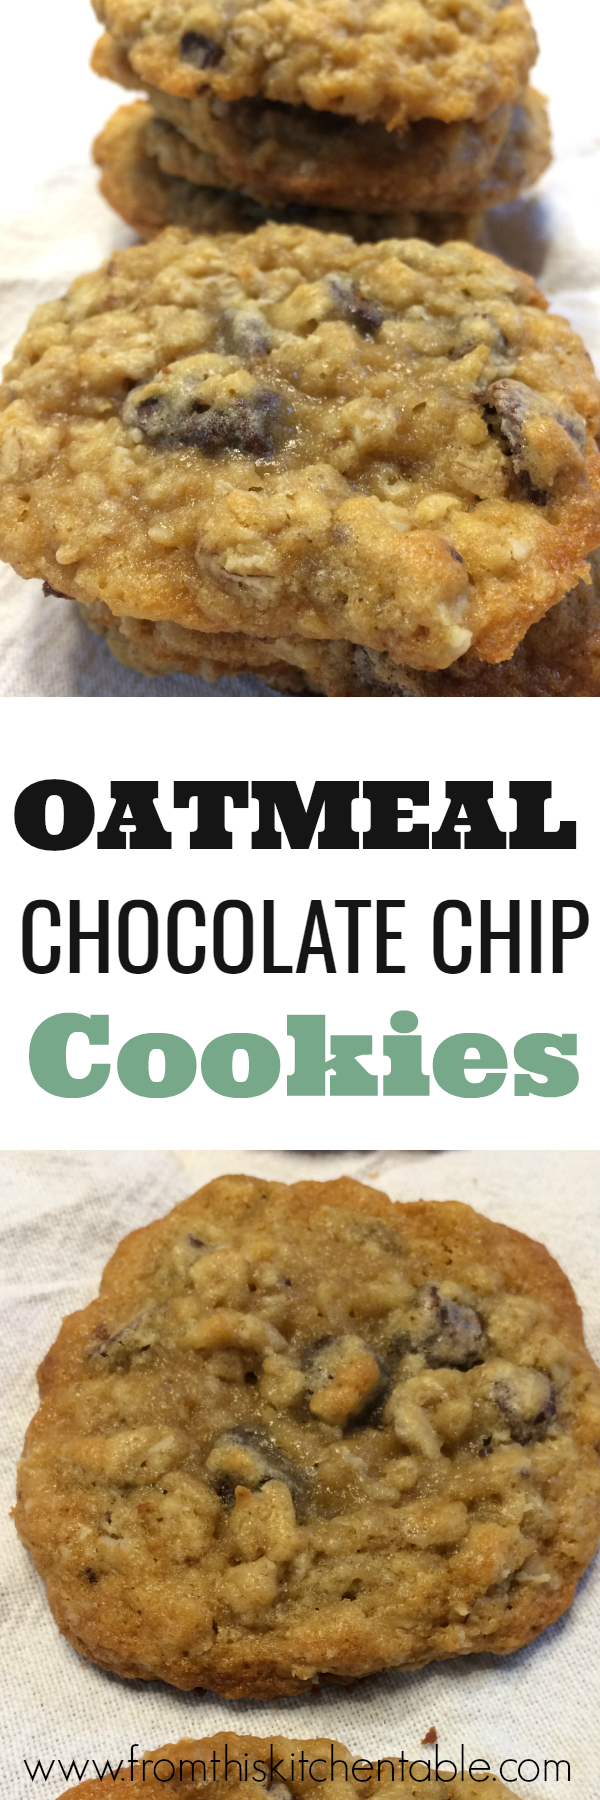 Super yummy oatmeal chocolate chip cookies. This recipes came from my grandma and the cookies and a thin and chewy perfection.